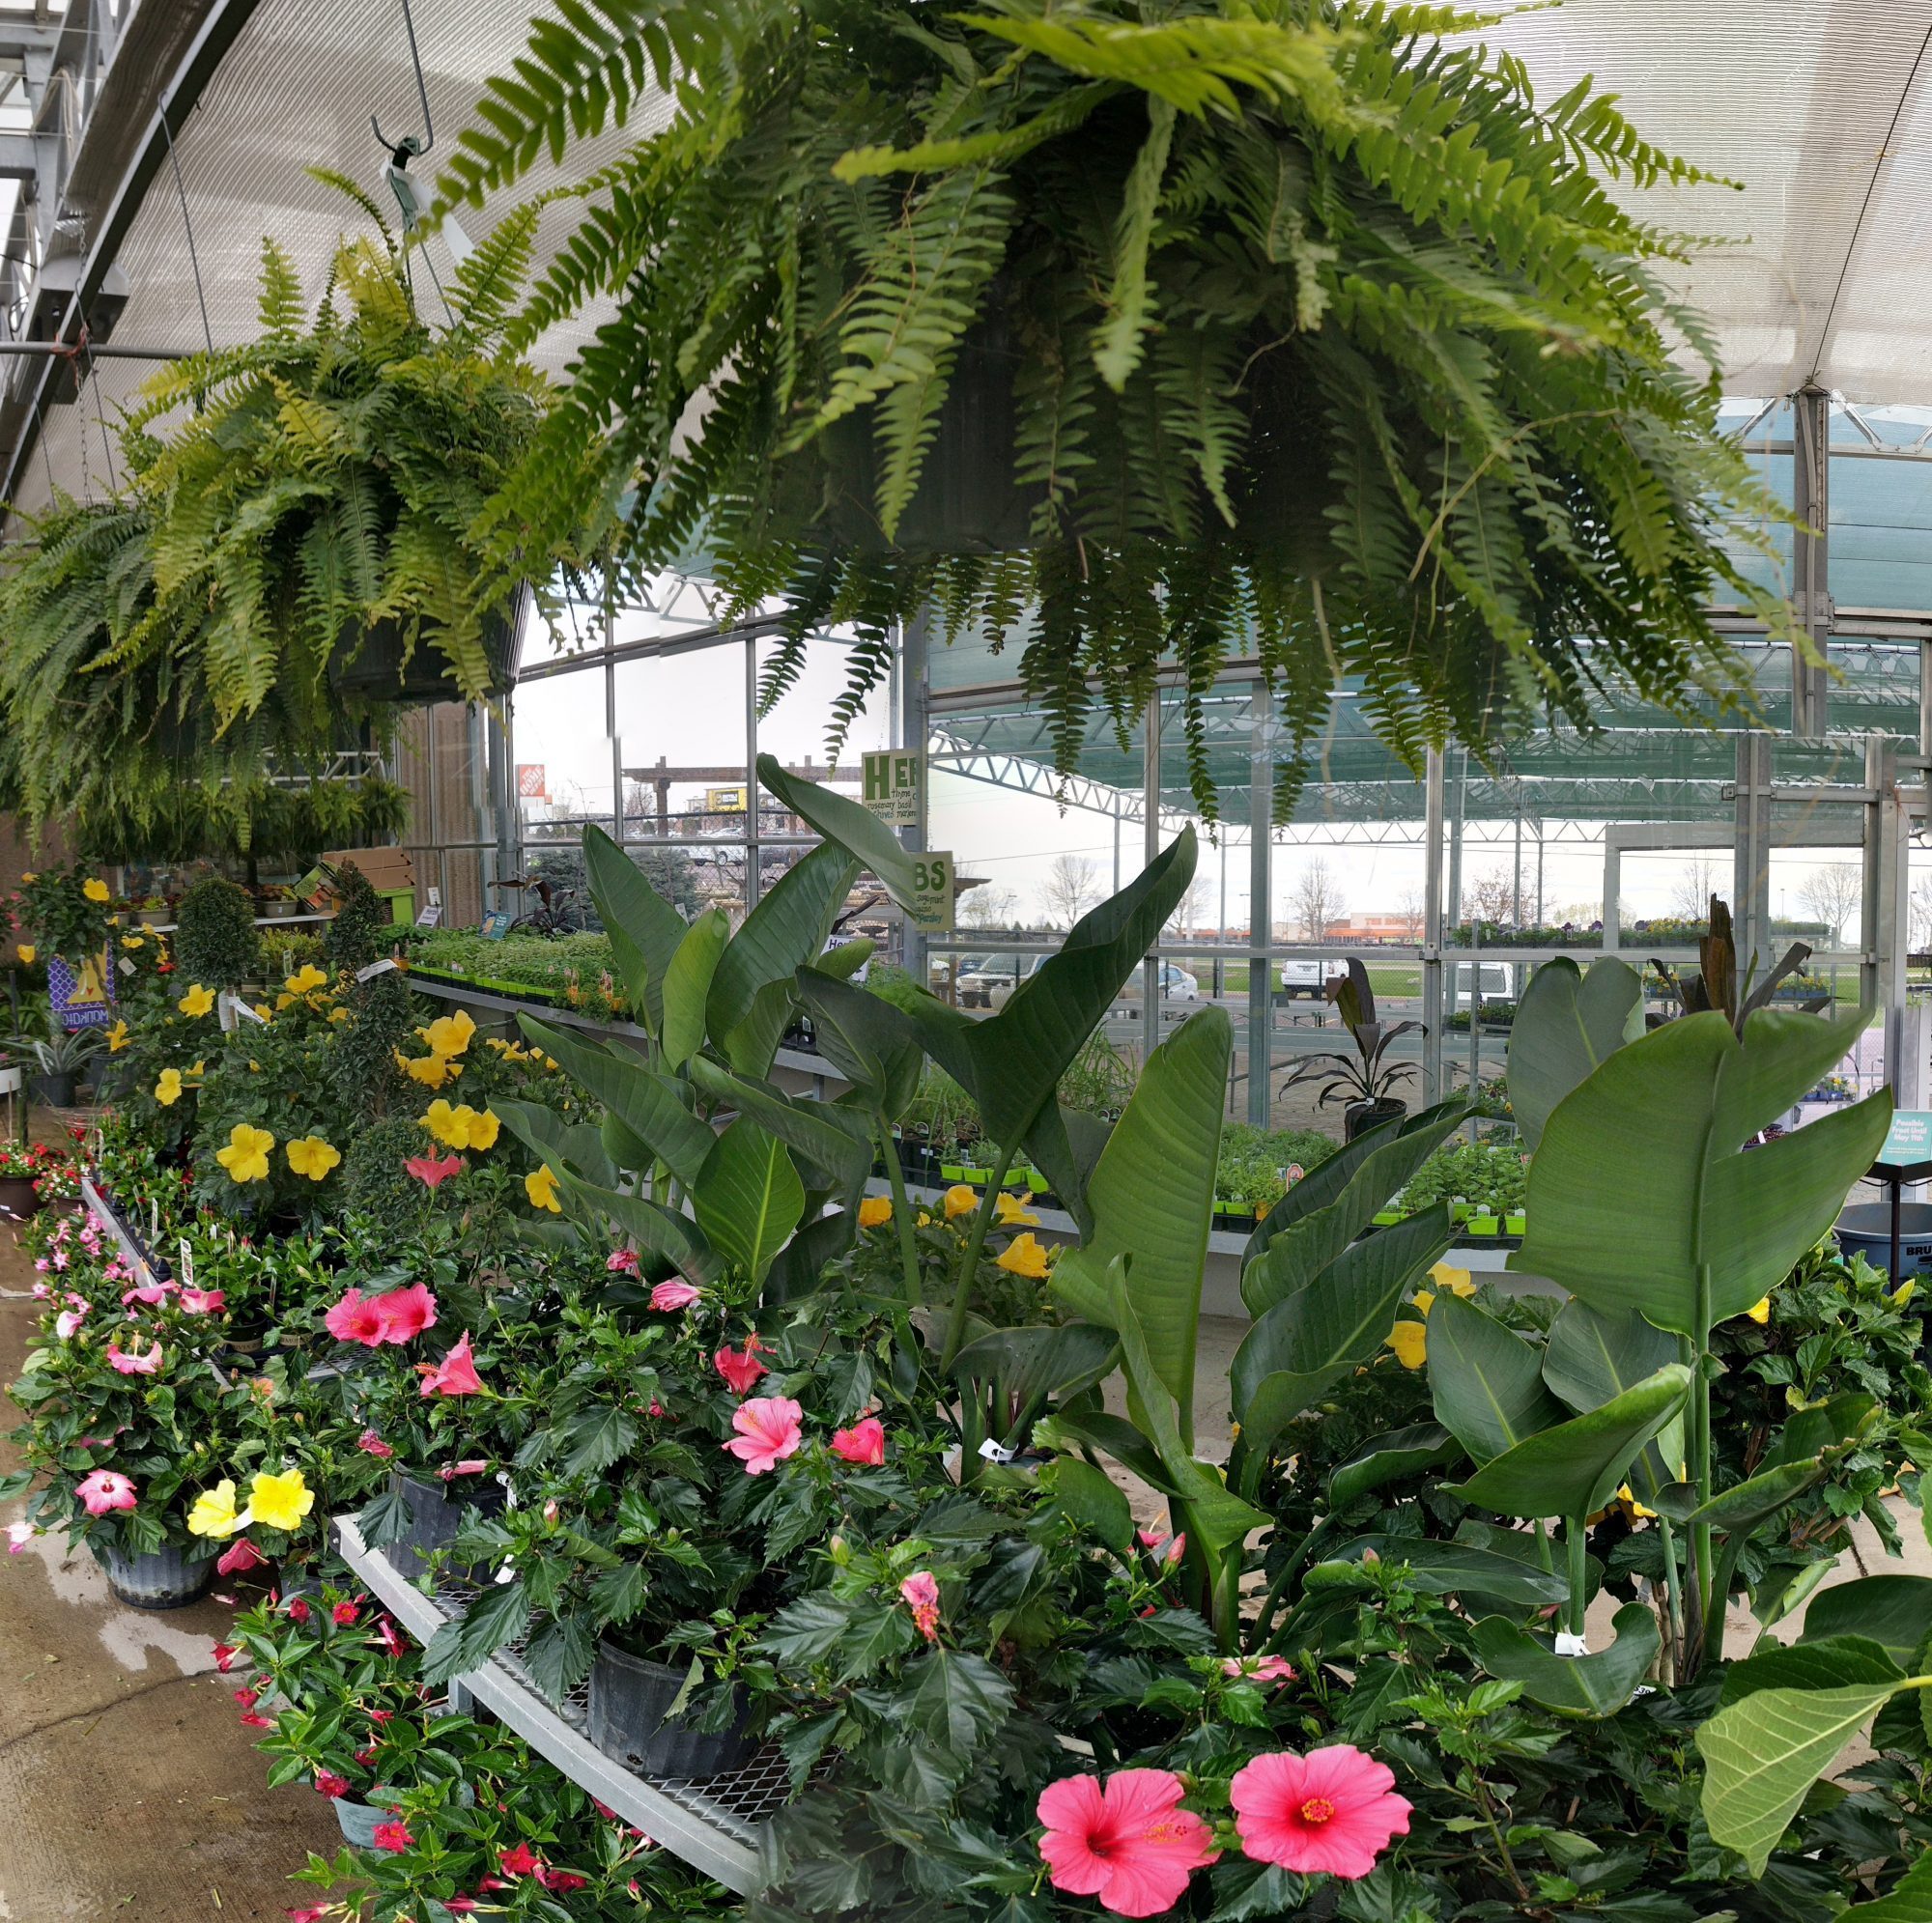 Ferns, hibiscus, and other tropicals in greenhouse